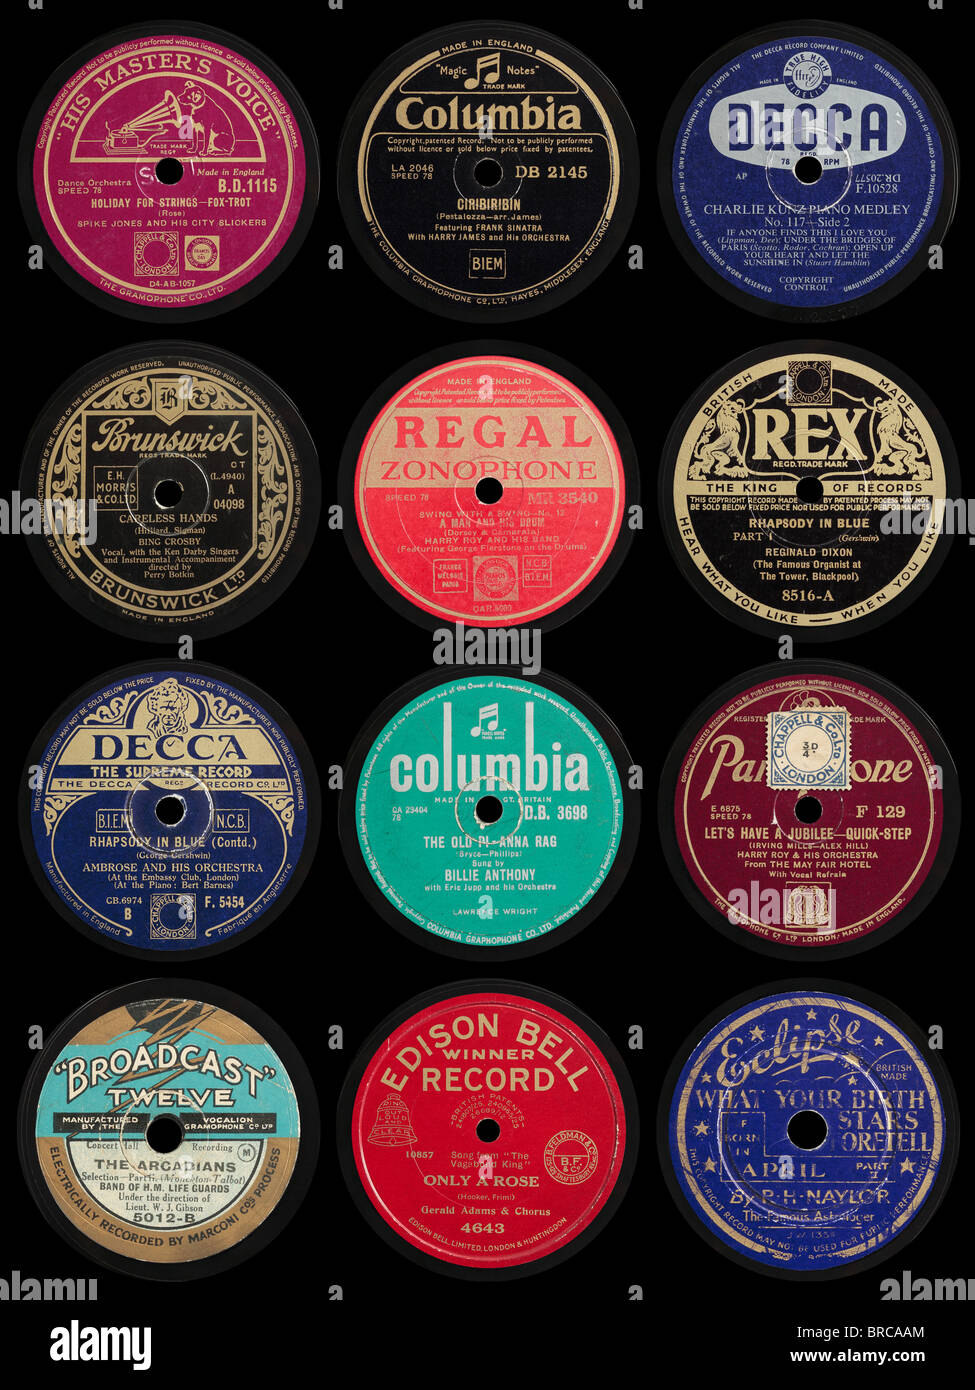 Old 78 rpm Gramophone Record Labels - Stock Image